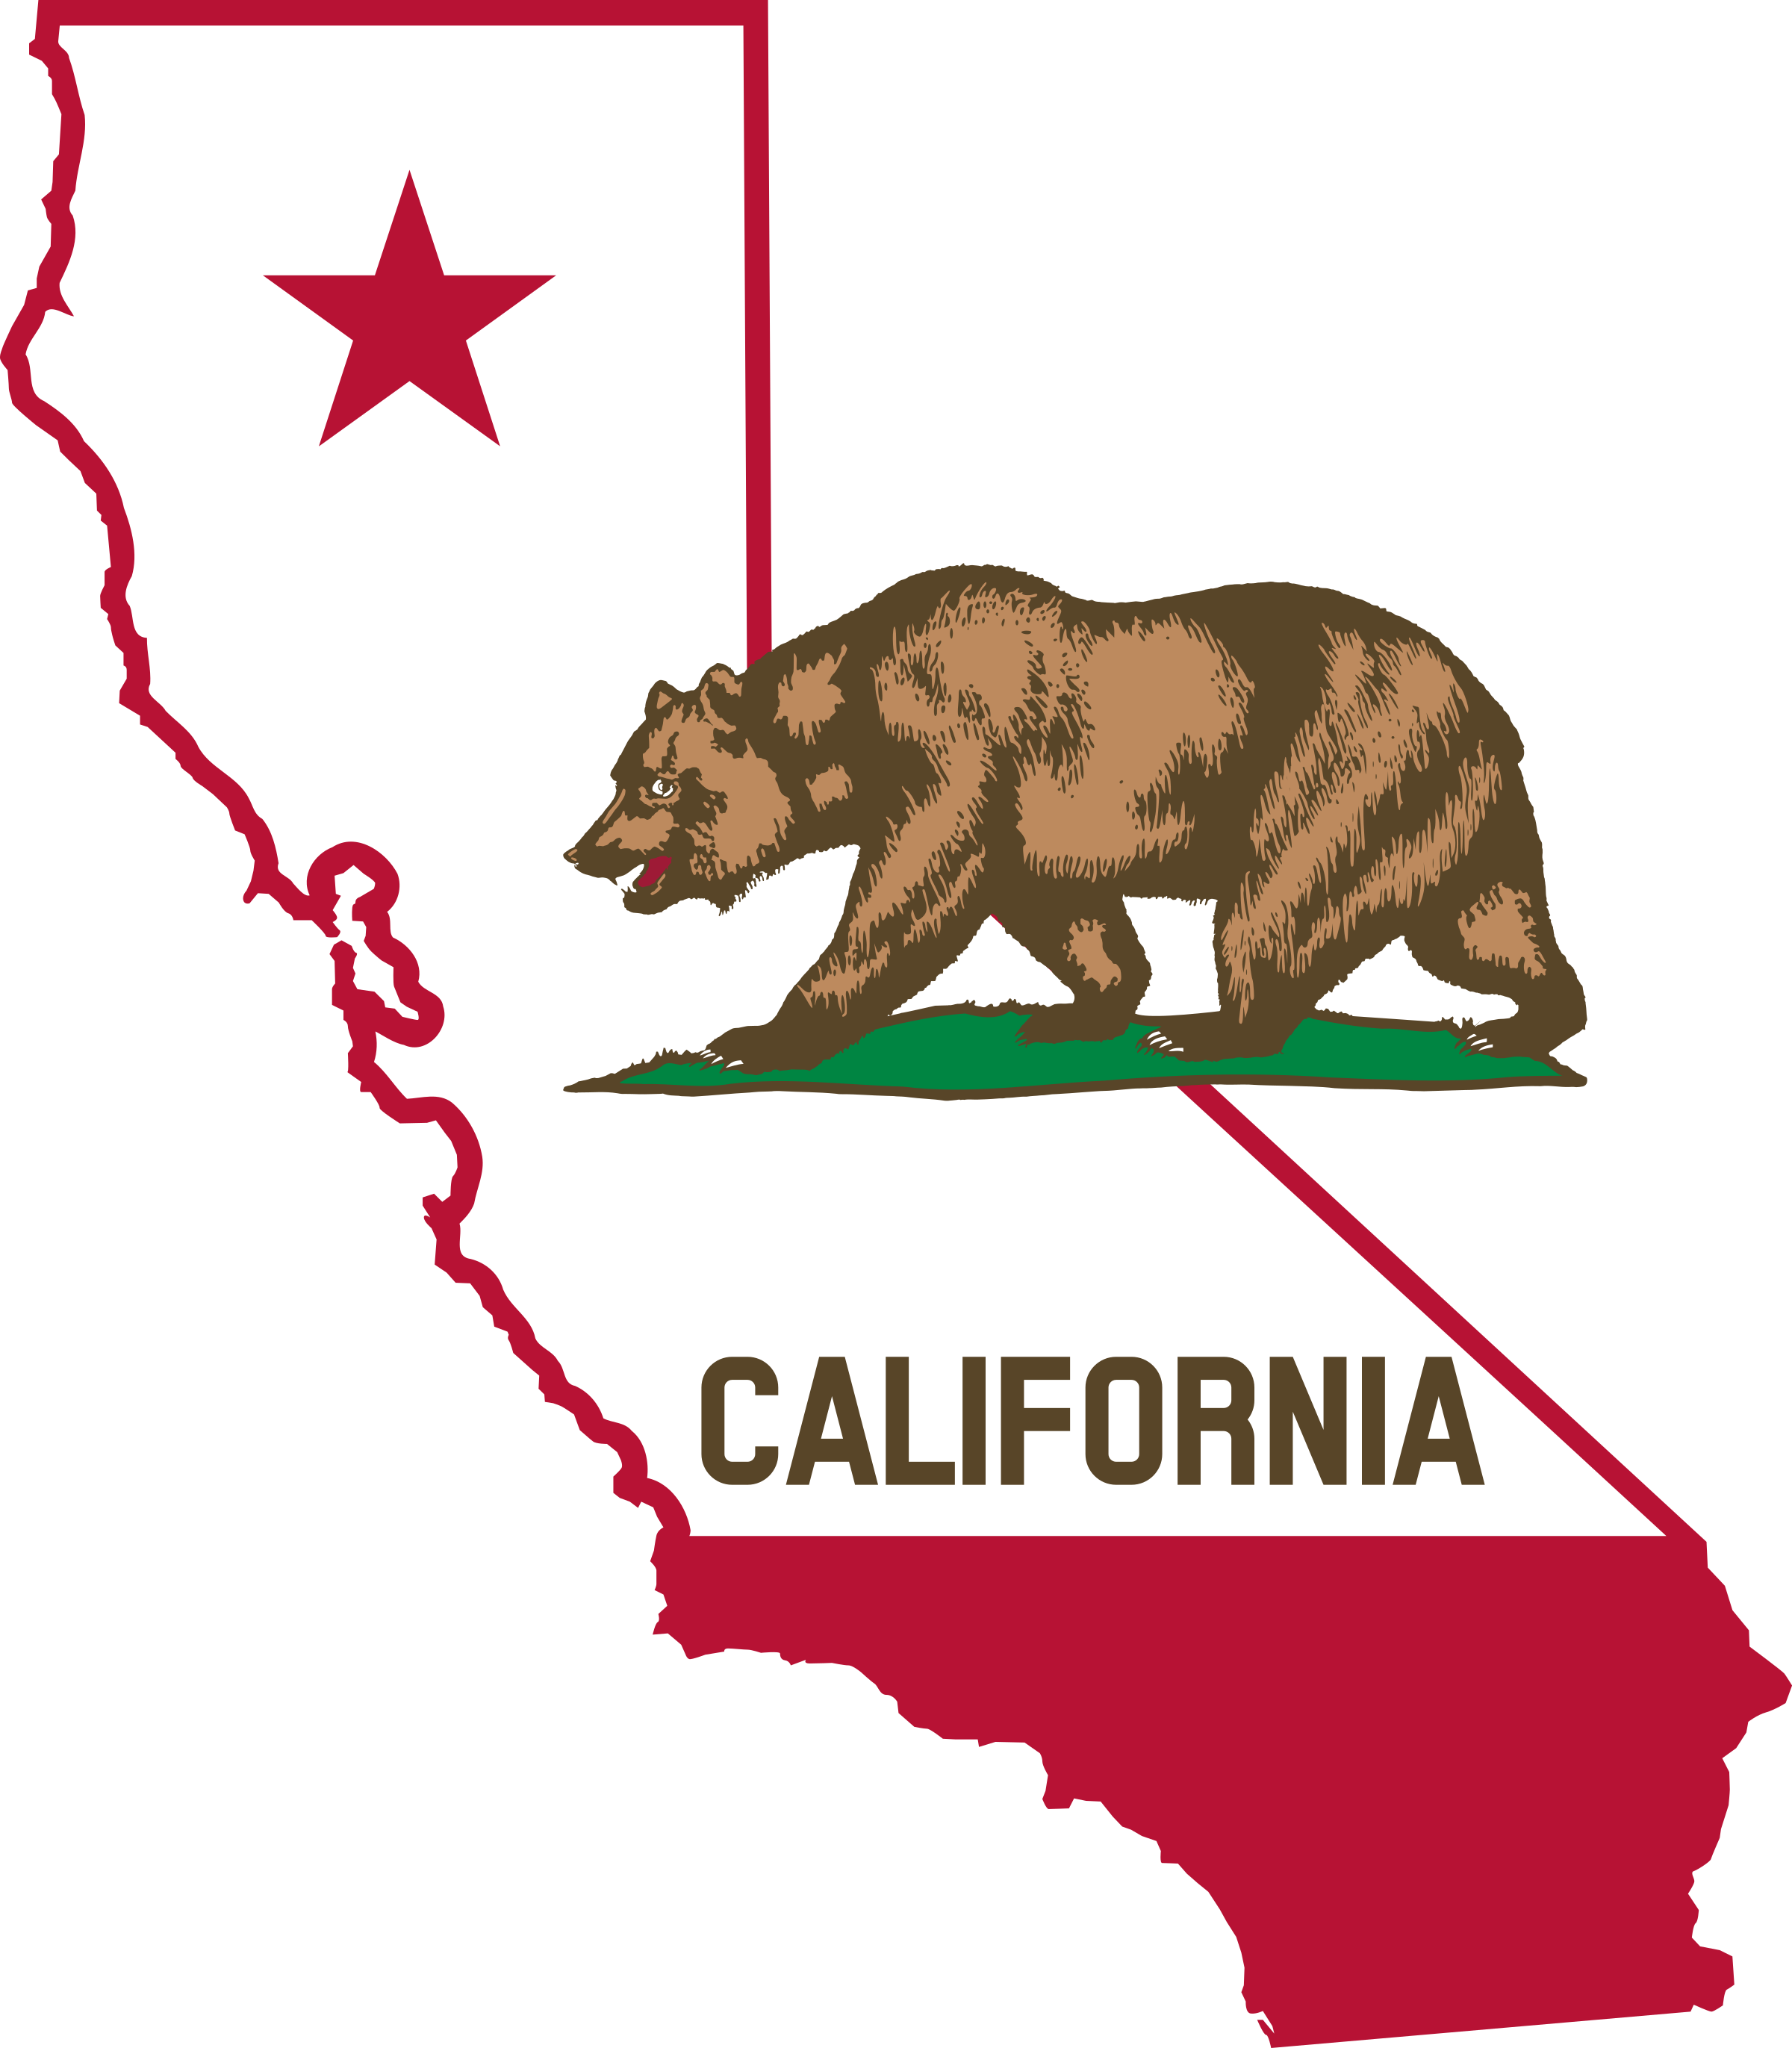 California Outline And Flag Ccdcc